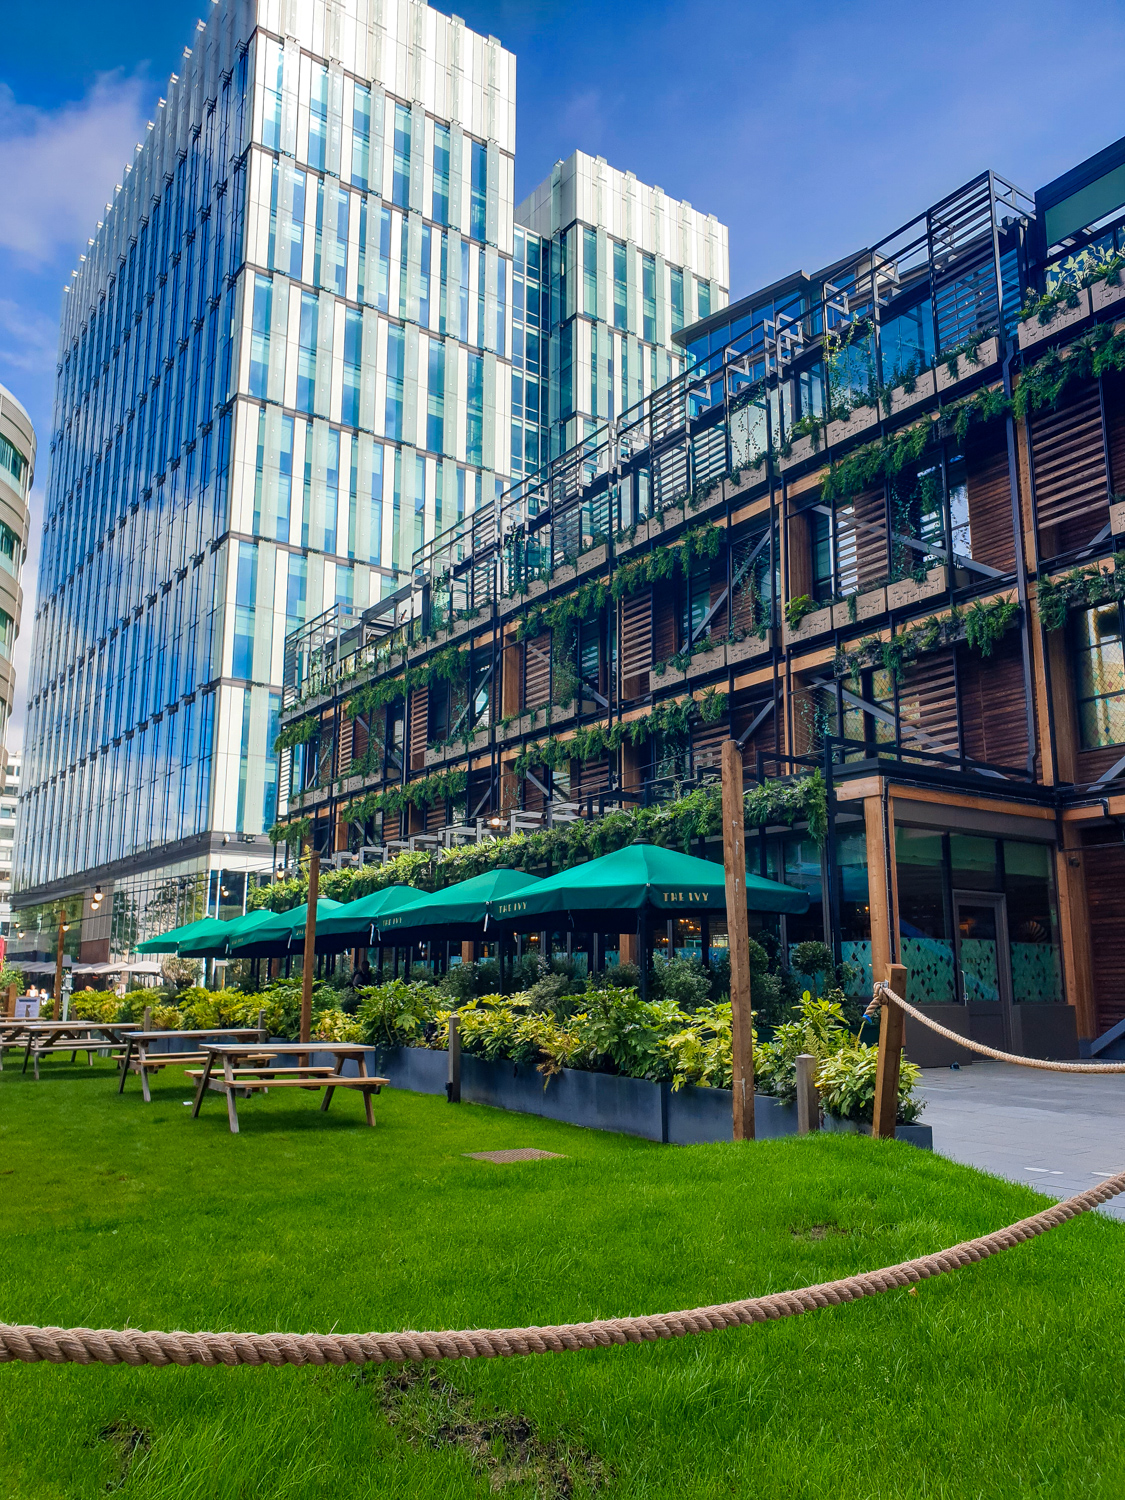 The Ivy in Manchester Spinningfield